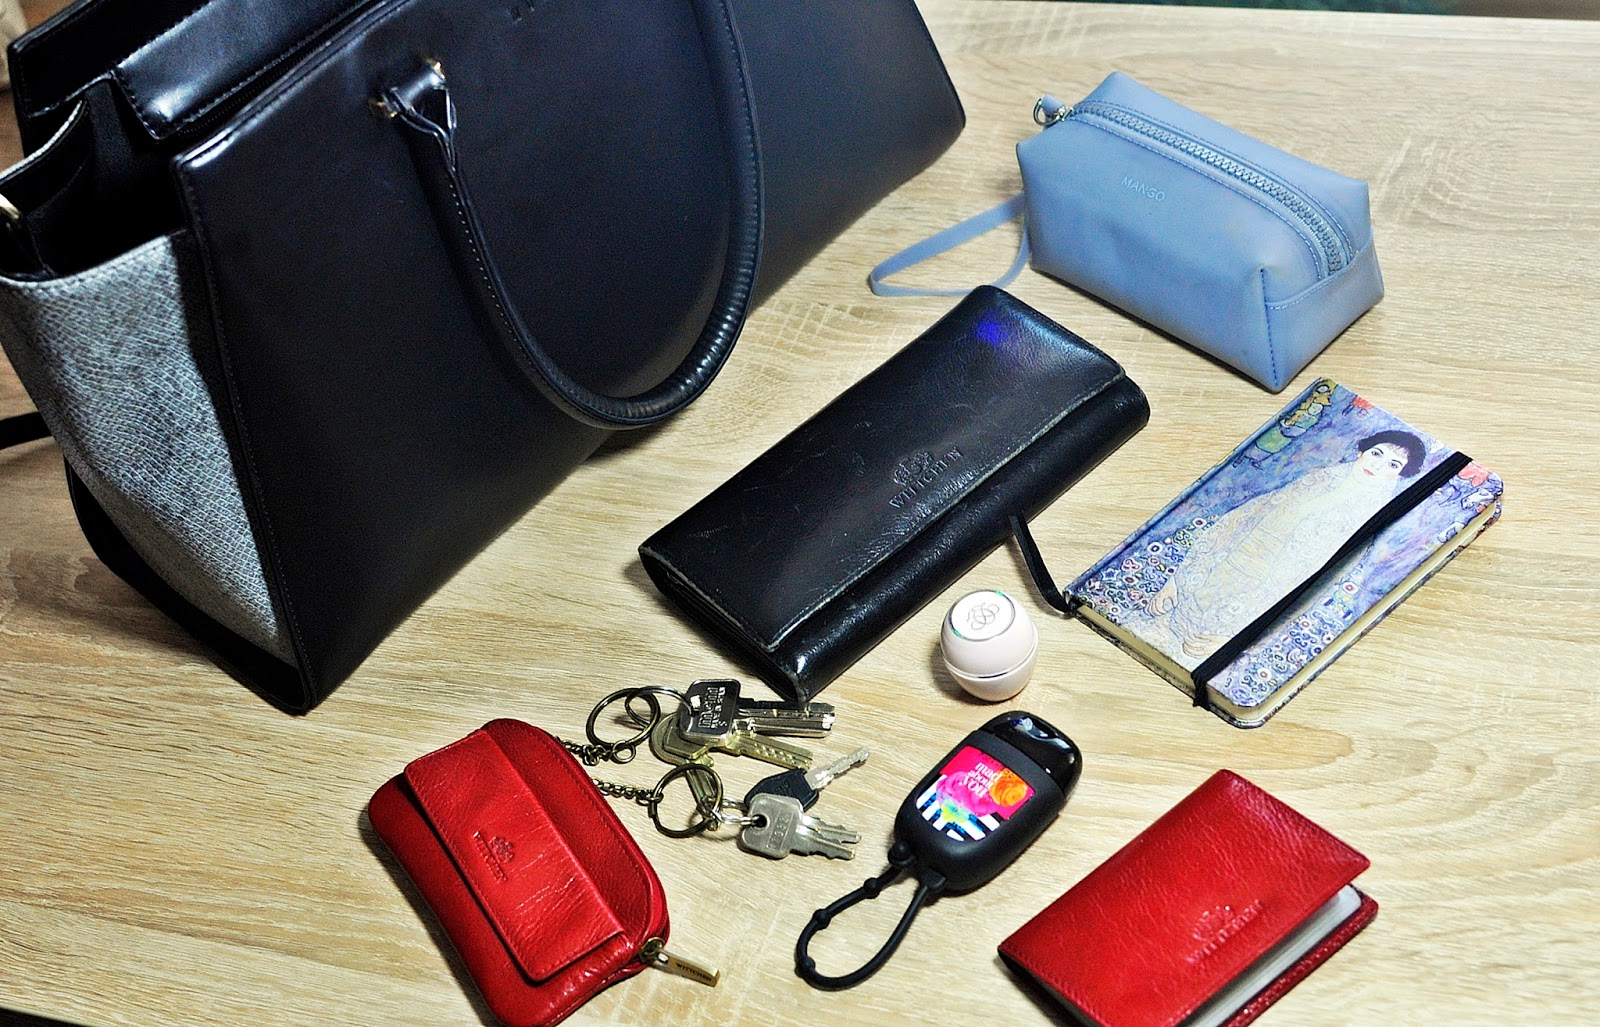 a65604f4c0194 TAG - Co jest w mojej torebce/ What is in my bag | A real shopaholic